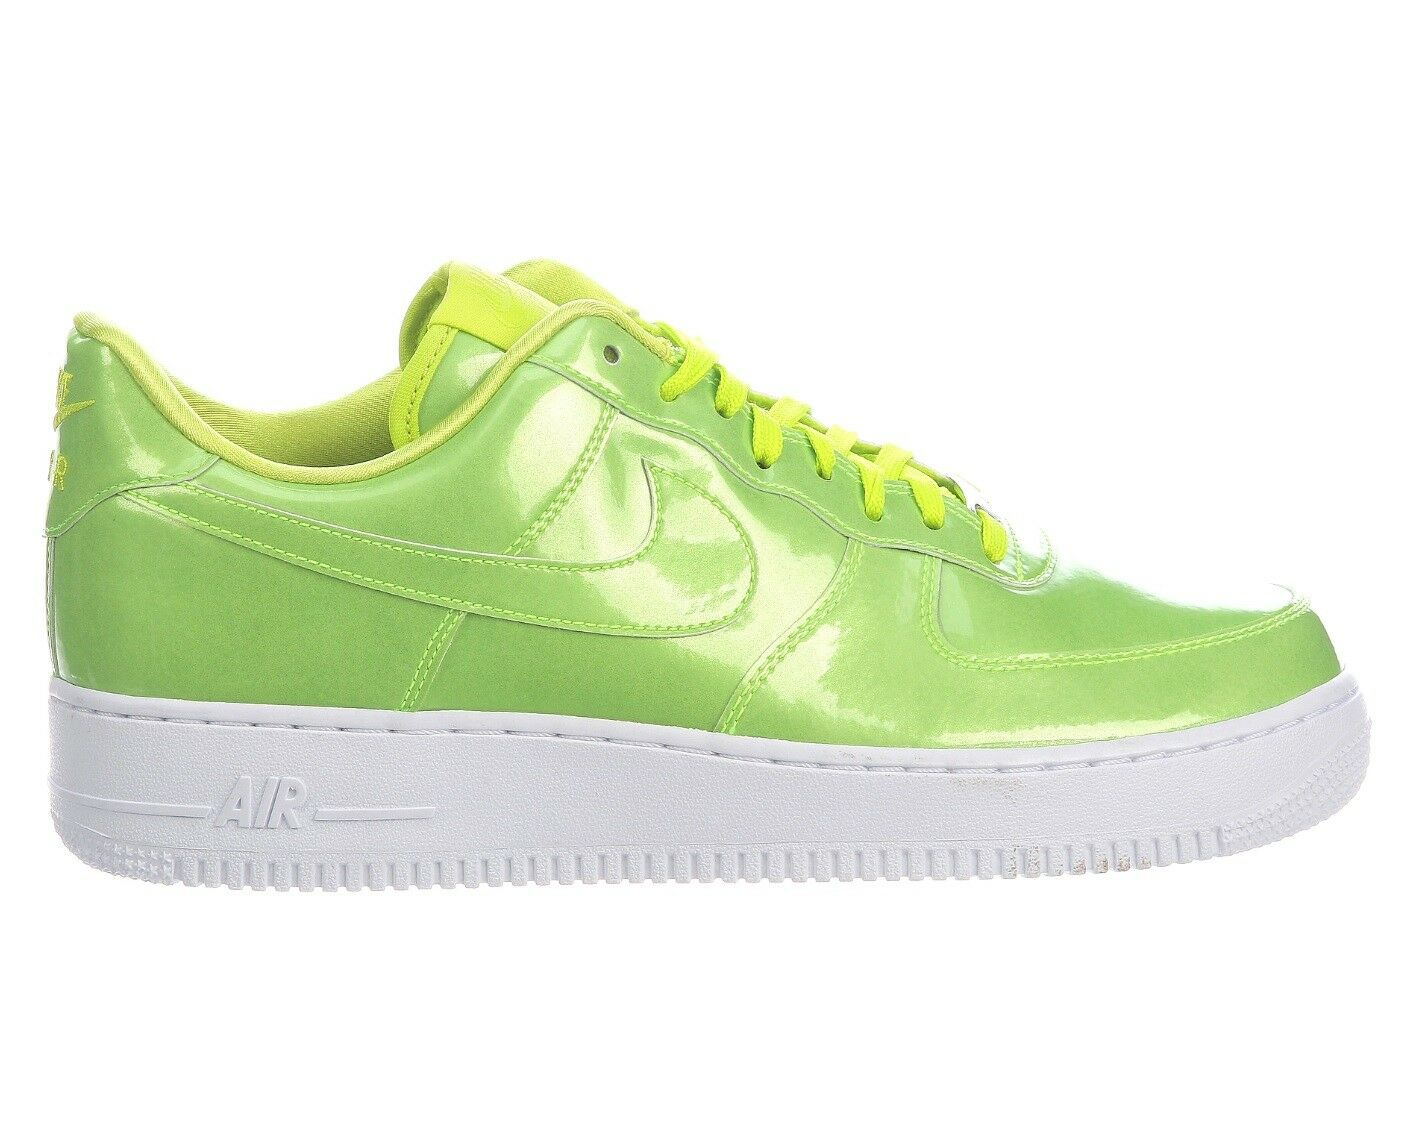 Nike Air Force 1 '07 LV8 UV Mens AJ9505-300 Cyber Patent Leather Shoes Comfortable Cheap and beautiful fashion